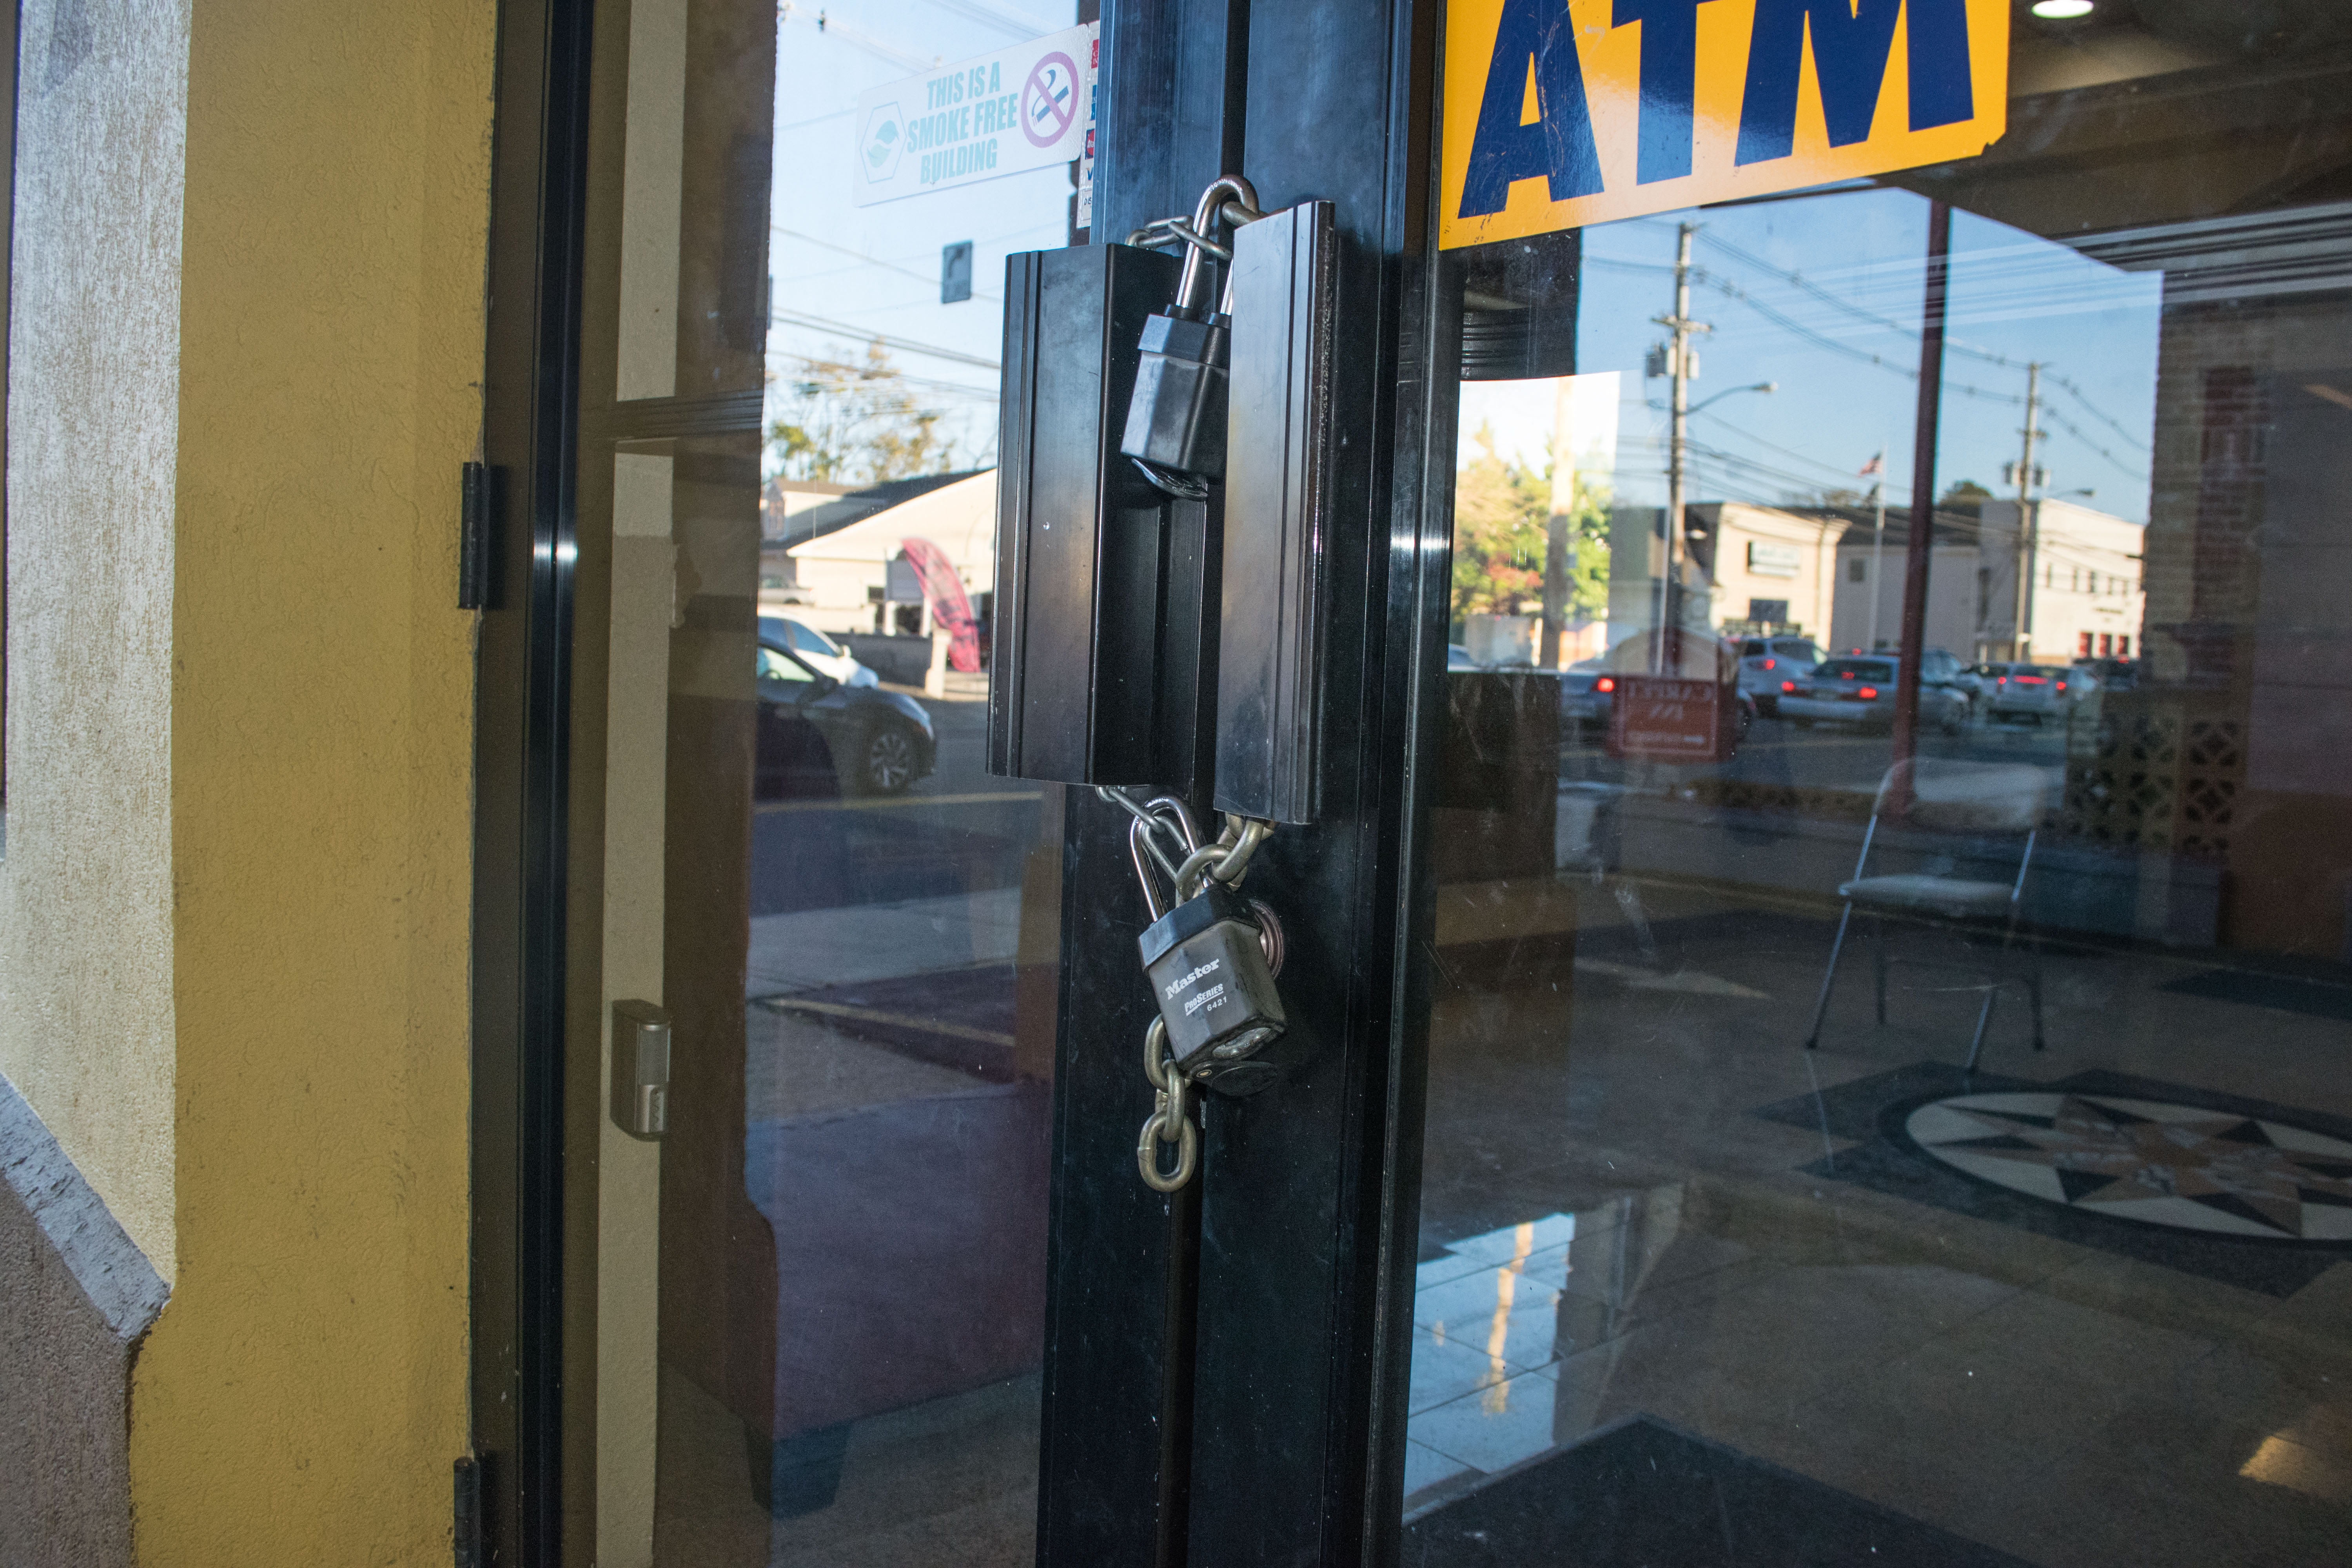 A chain and lock on the door of the Red Carpet Inn after being purchased by the municipal government of Toms River, Oct. 29, 2018. (Photo: Daniel Nee)